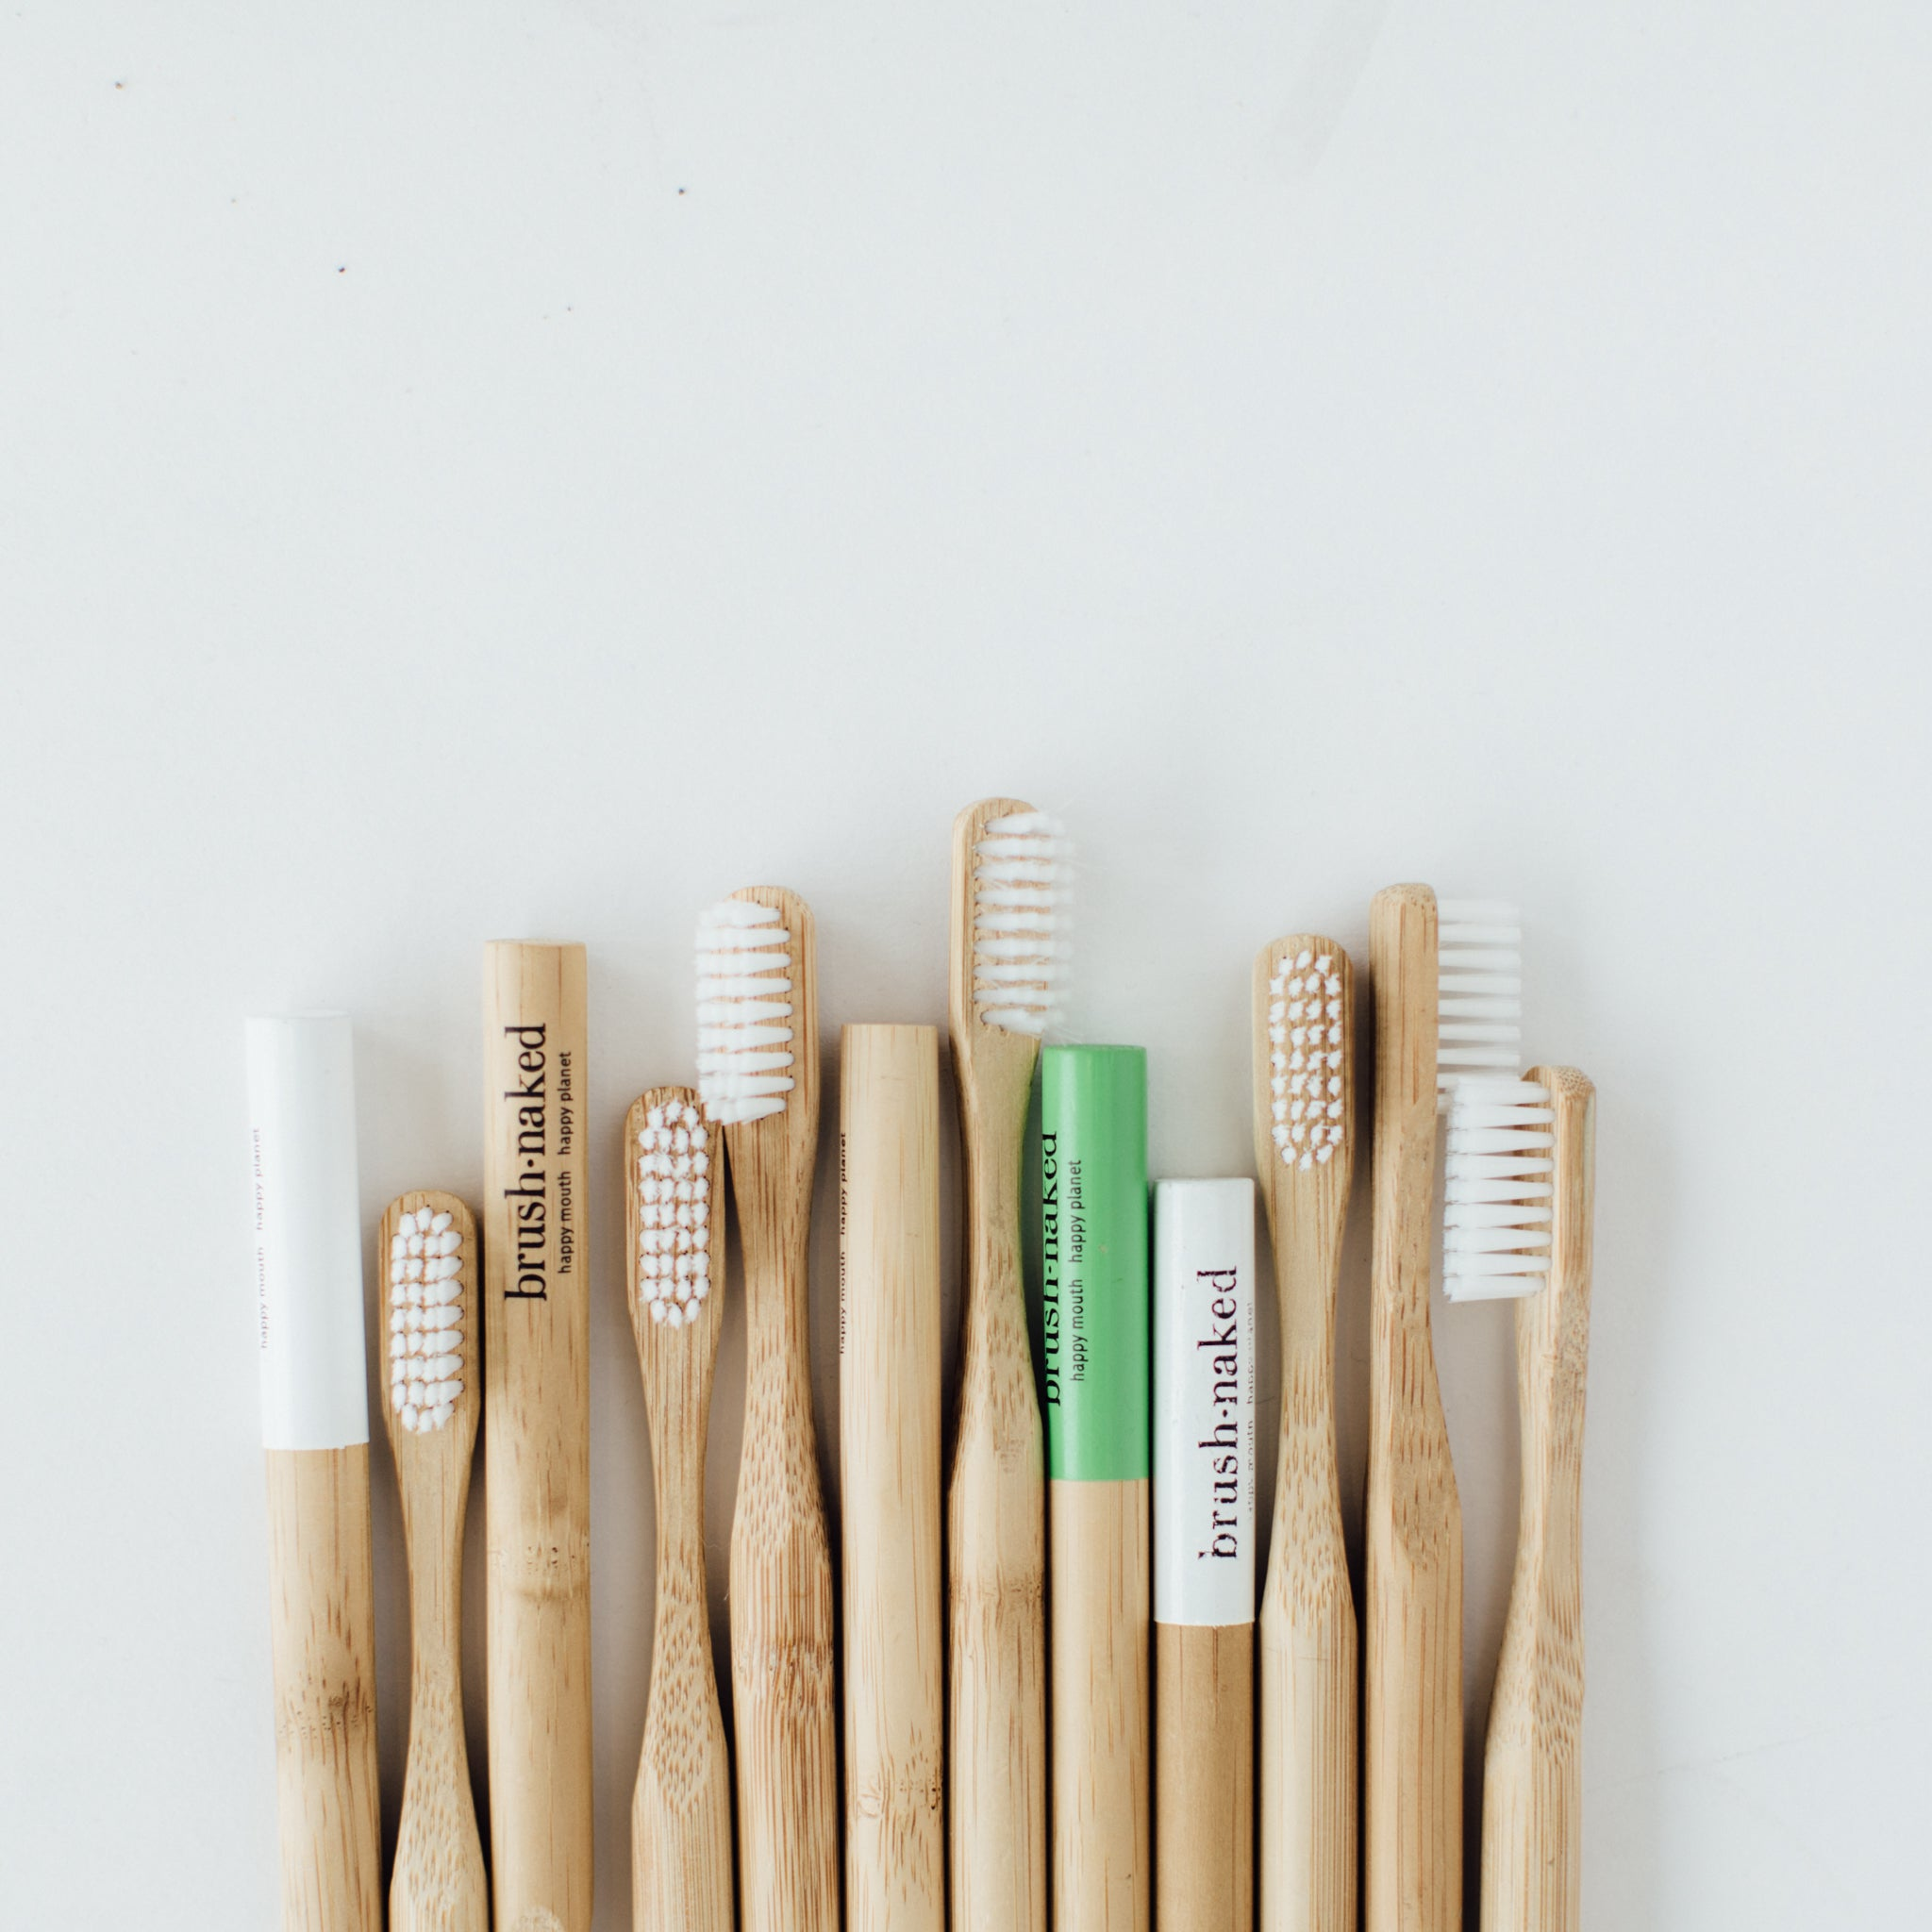 Toothbrush with Biodegradable Plant-Based Bristles (Adult)- 12-Pack